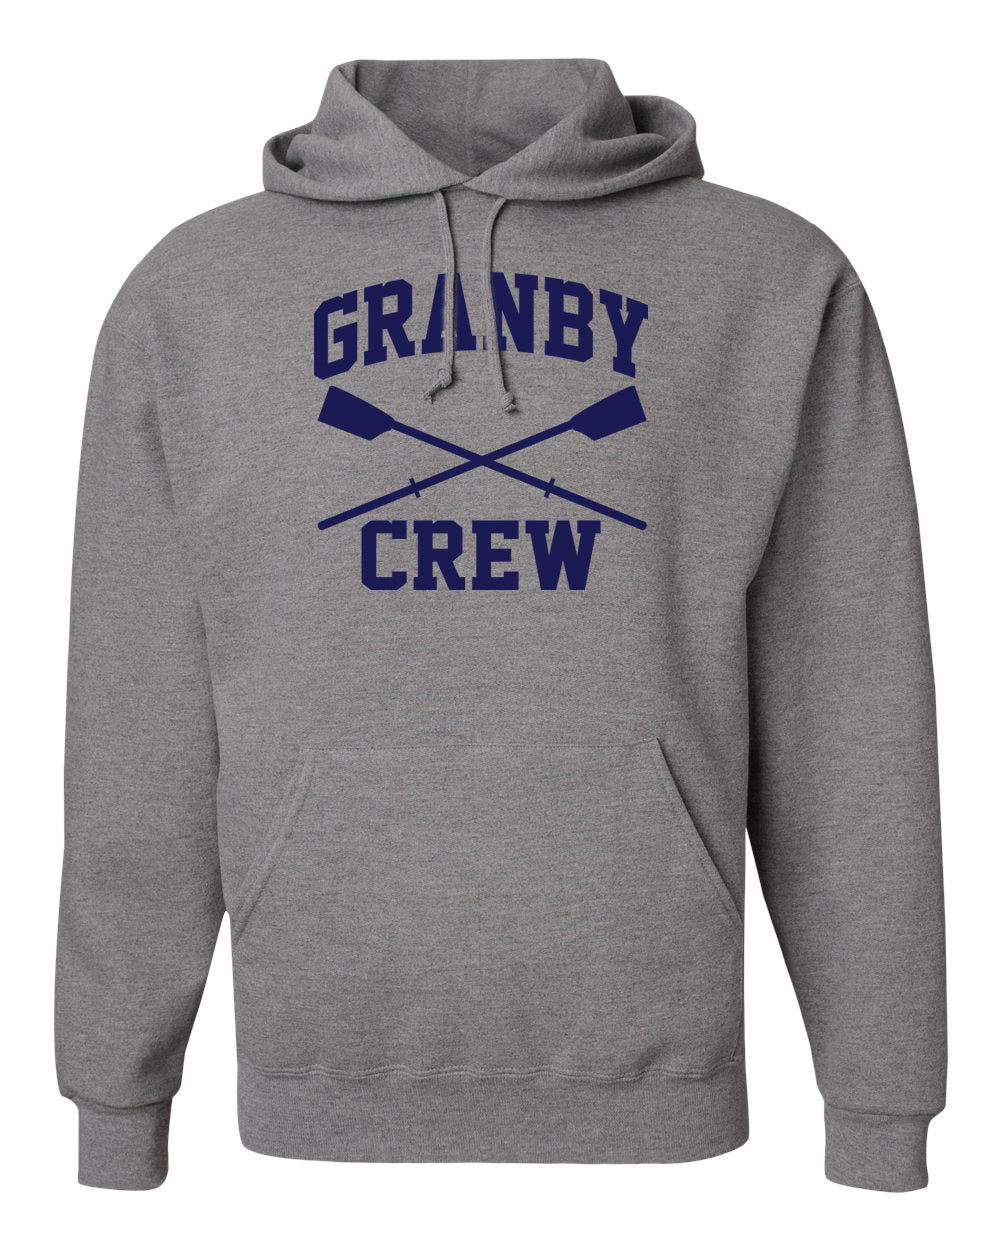 50/50 Hooded Granby Crew Pullover Sweatshirt